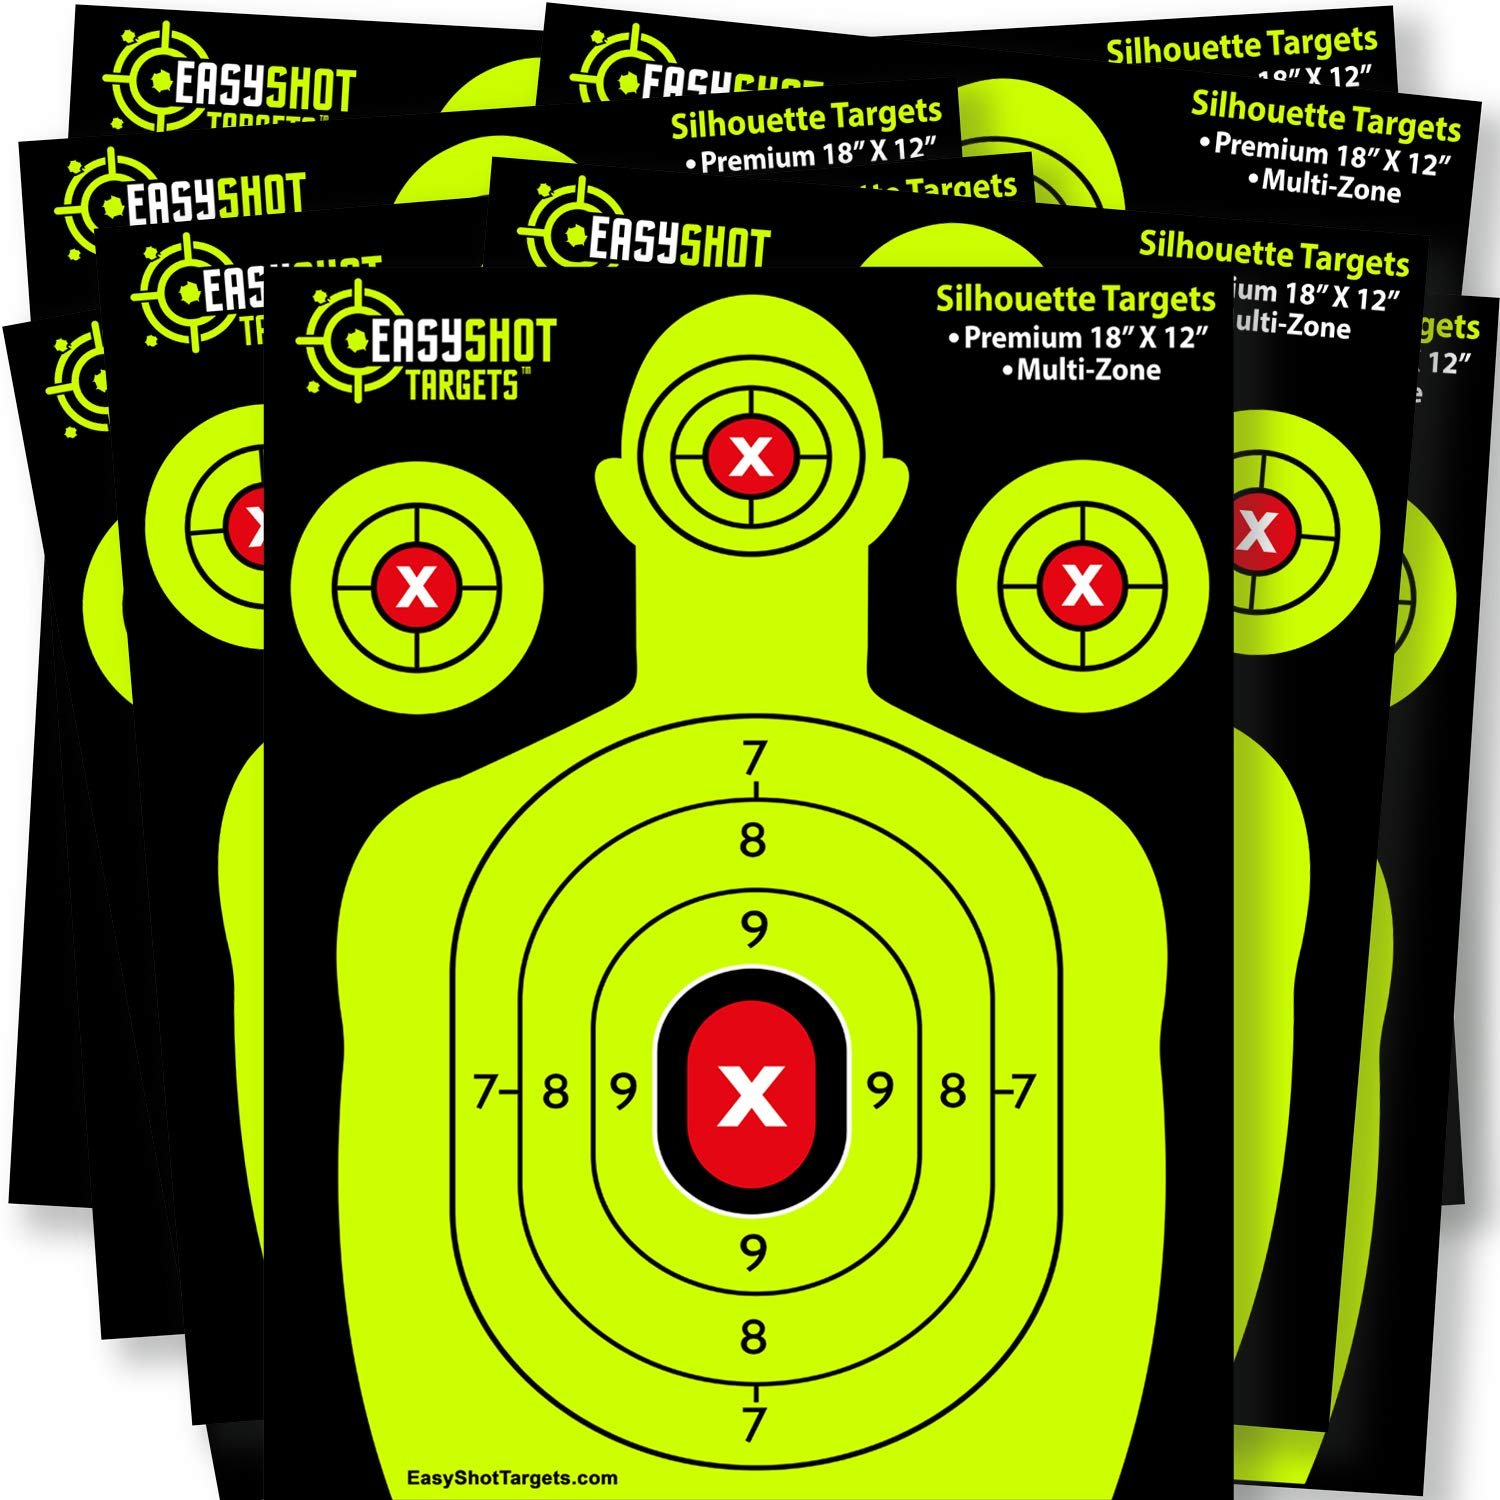 EASYSHOT Shooting Targets 18 X 12 inch. Shots are Easy to See with Our High-Vis Neon Yellow & Red Colors. Thick Silhouette Paper Sheets for Pistols, Rifles, BB Guns, Airsoft, Pellet Guns & More. by EasyShot Targets (Image #3)